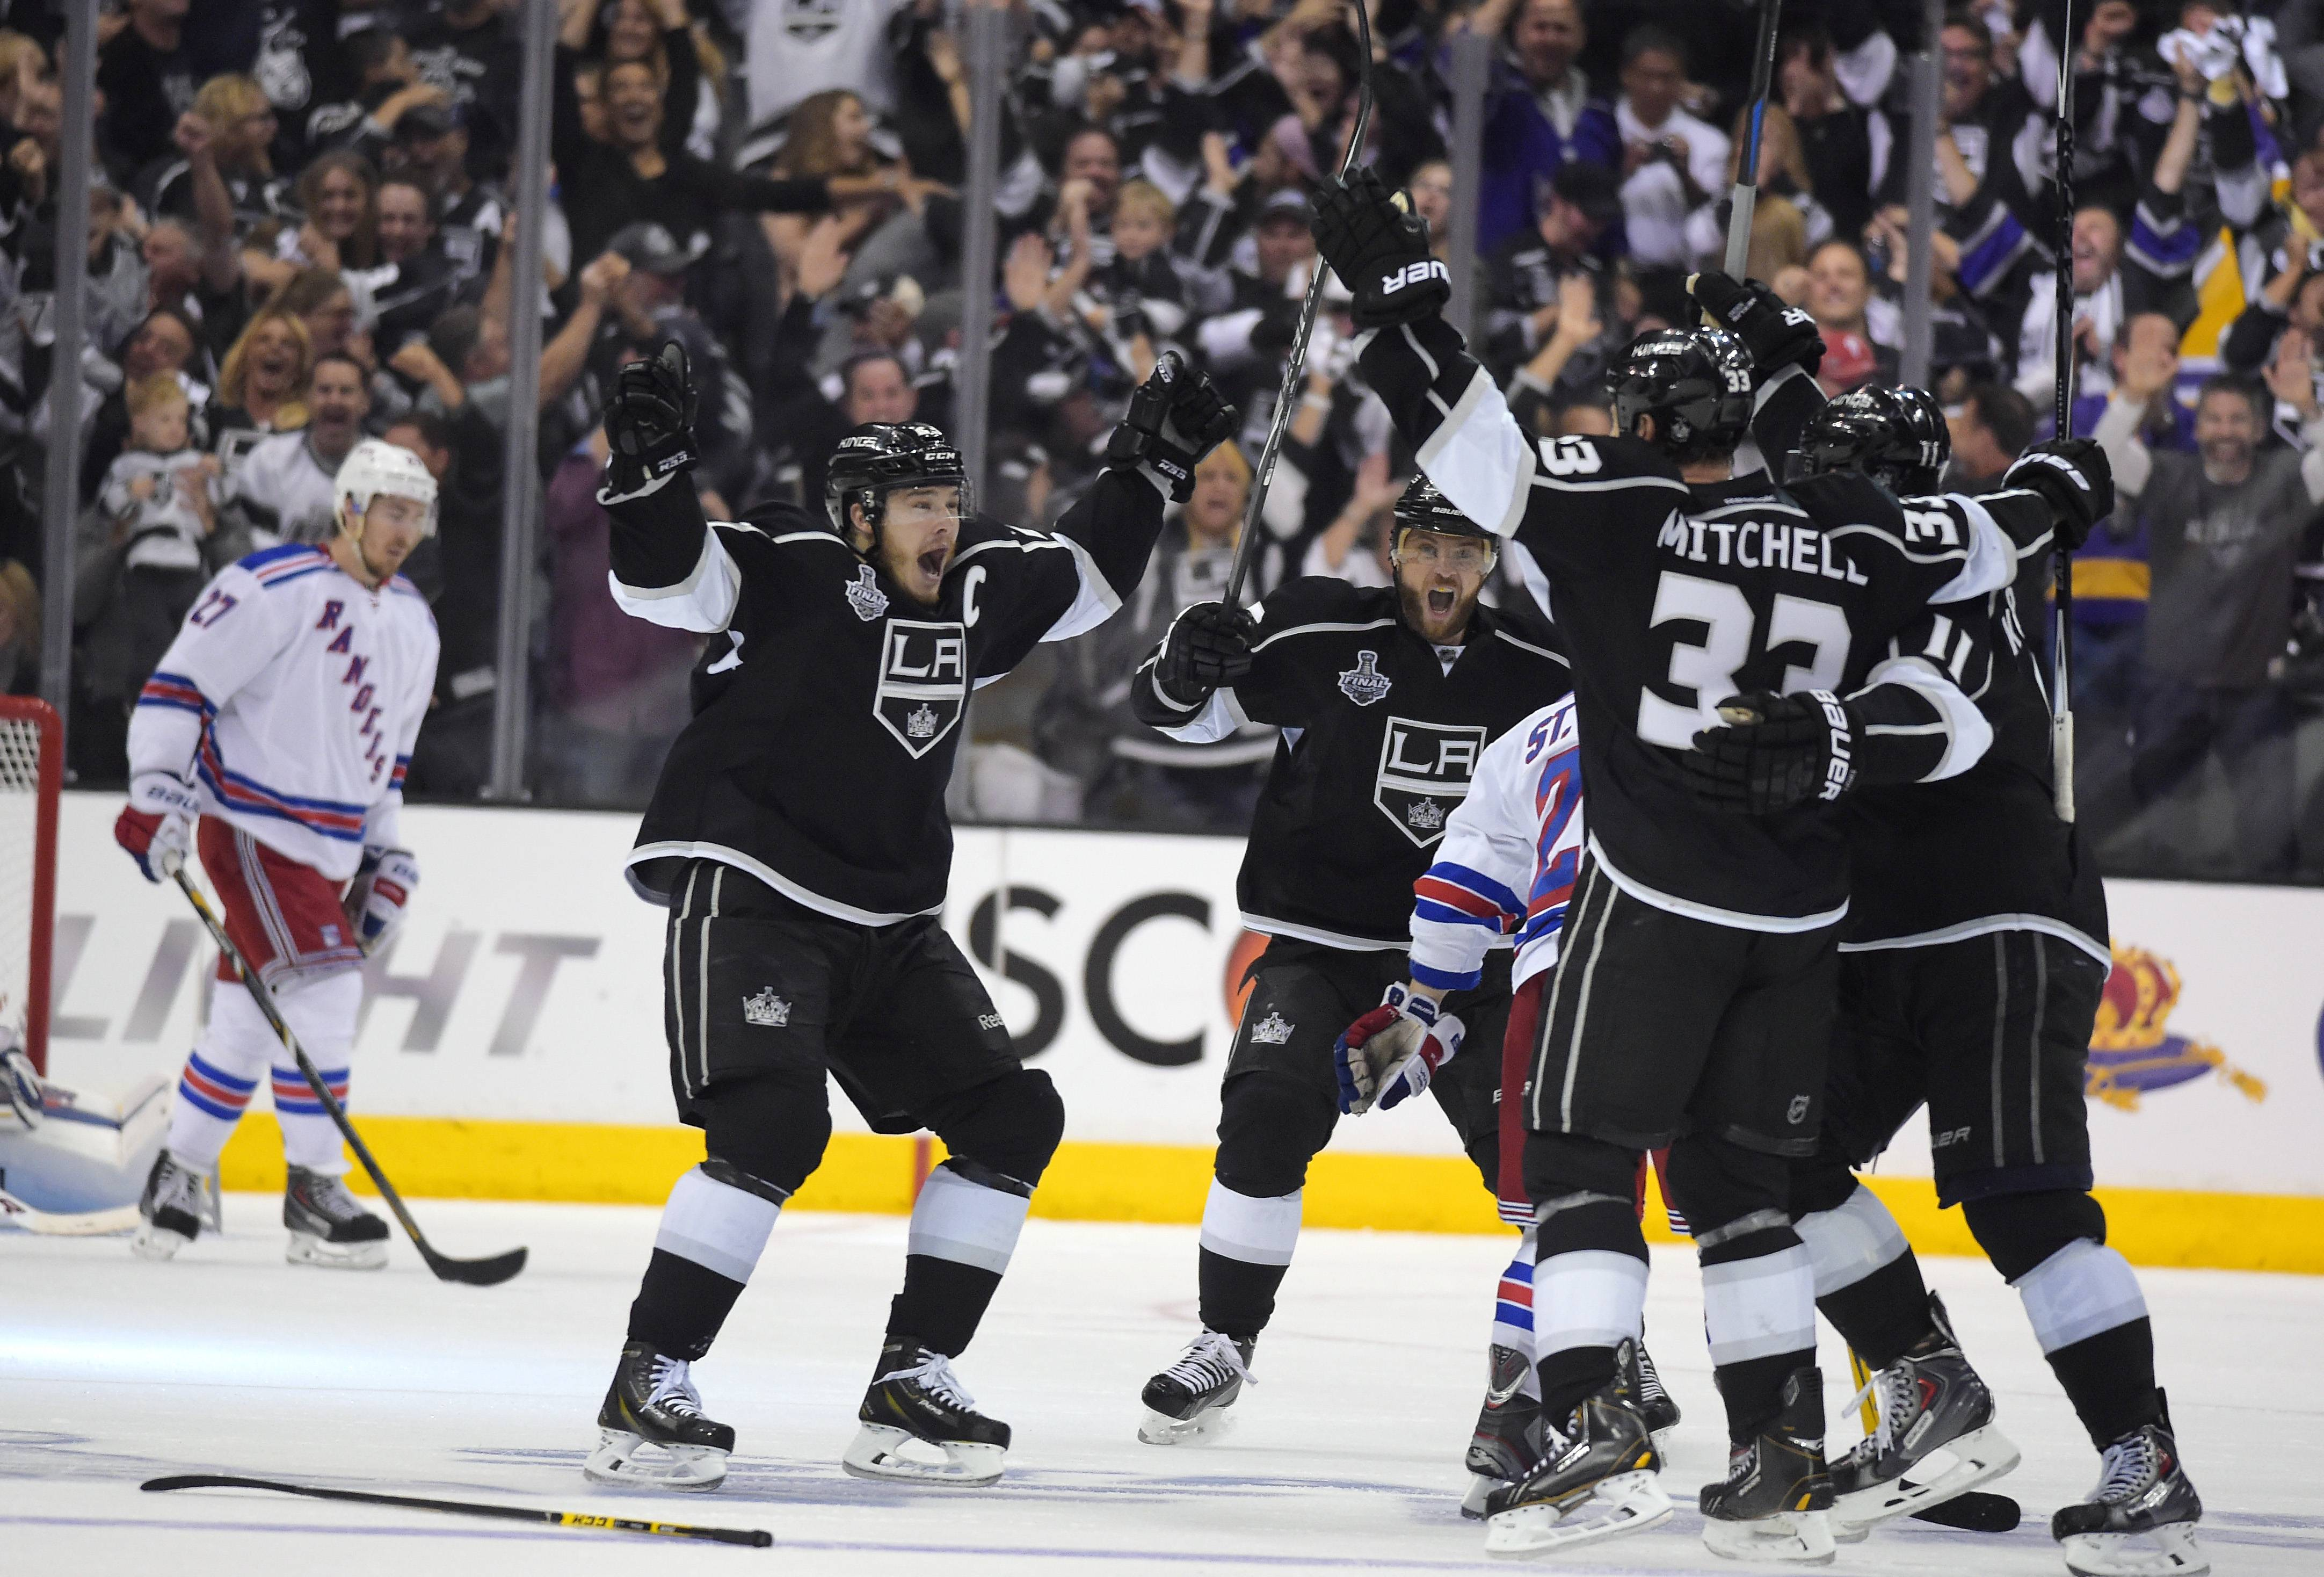 Los Angeles Kings' Dustin Brown, second from left, celebrates his game-winning goal with teammates as New York Rangers defenseman Ryan McDonagh skates at left in the second overtime period in Game 2 of the NHL hockey Stanley Cup Finals, Saturday, June 7, 2014, in Los Angeles. The Kings won 5-4.